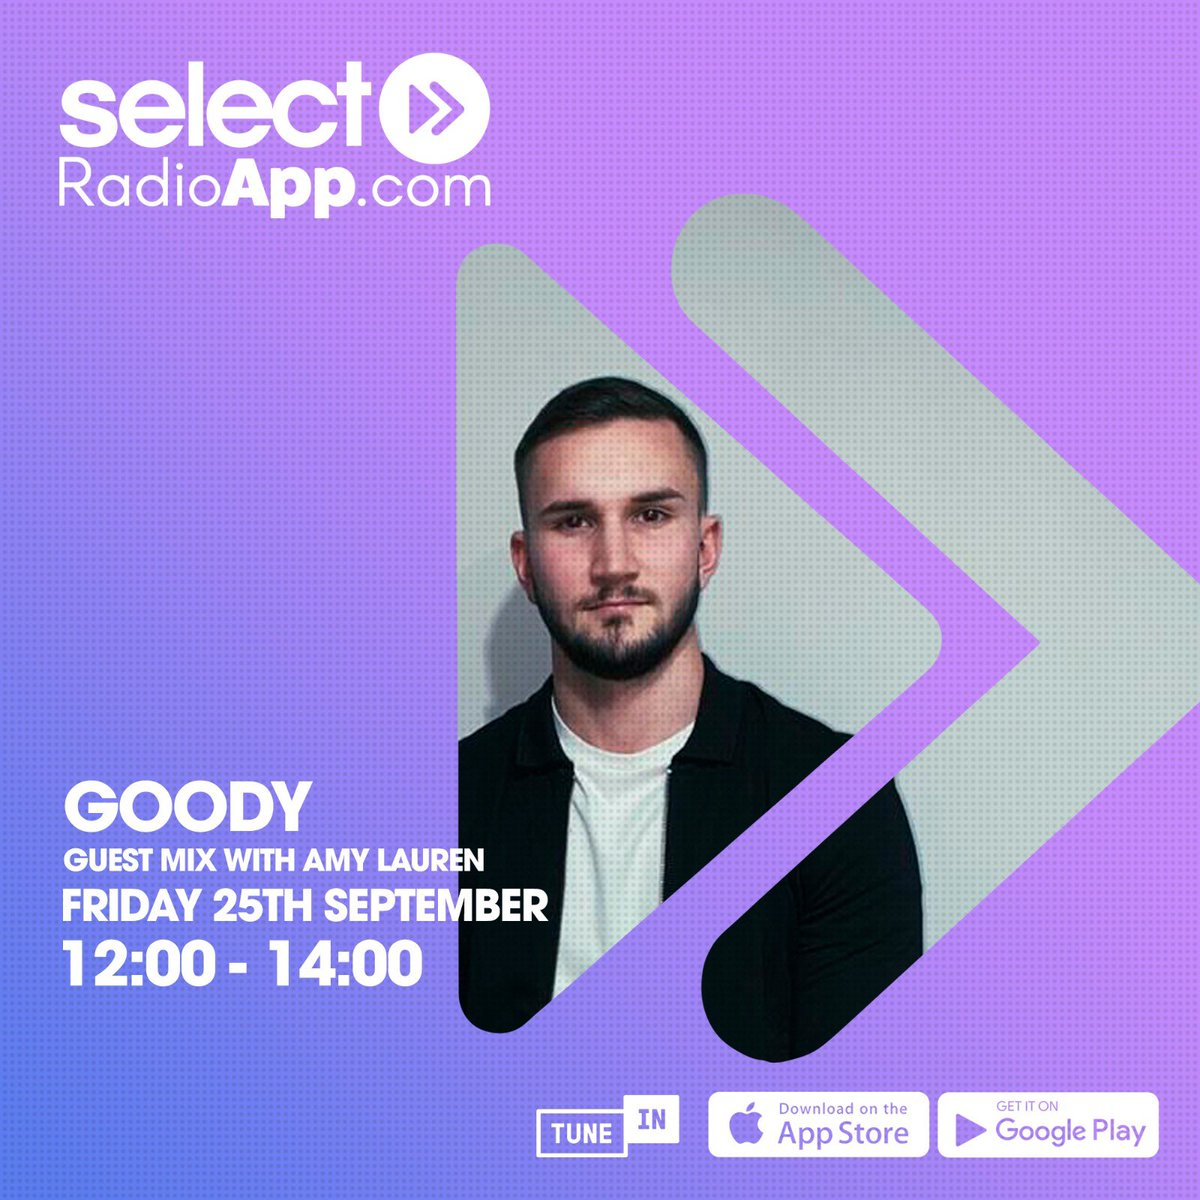 #np @detlefmusic - Dub clap in @OfficialGoody #GuestMix on #TheDanceShow on @SelectRadioApp https://t.co/4SxsfplIC6